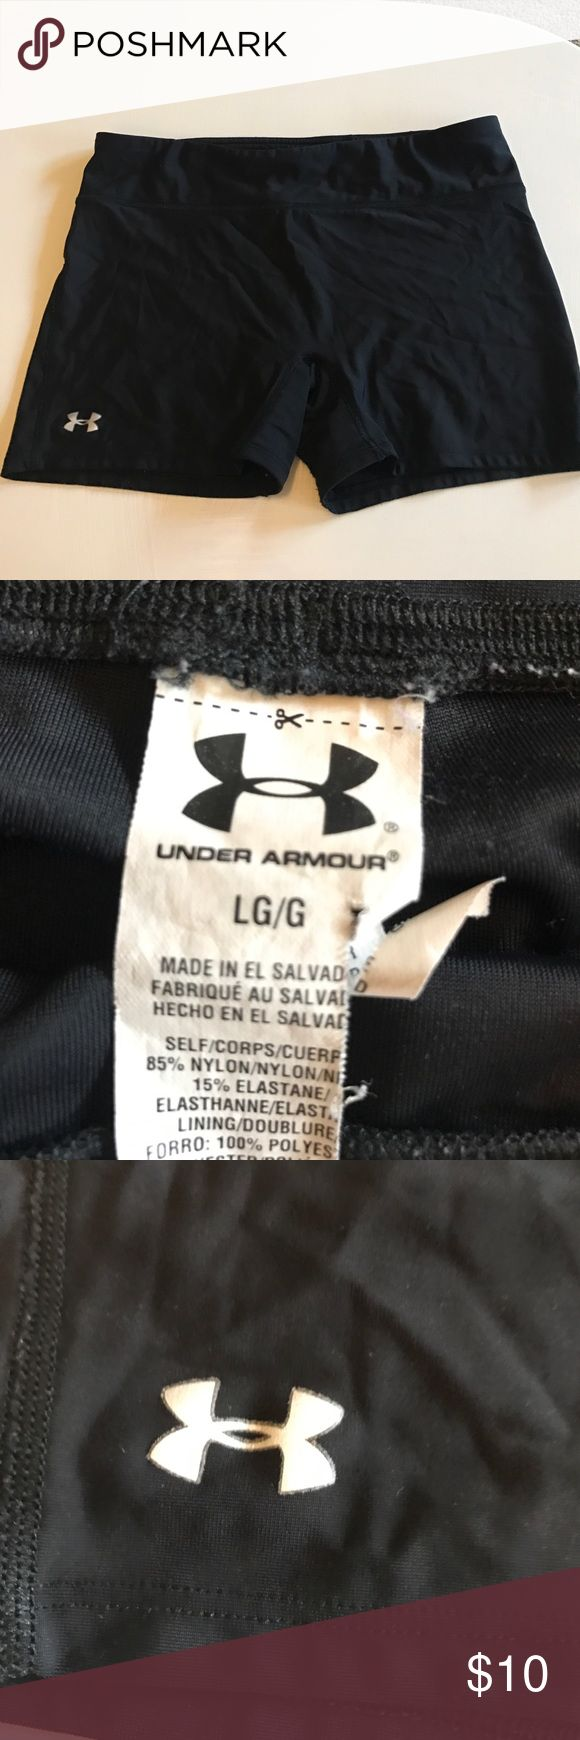 Black spandex shorts Comfy Spandex shorts! Only worn a few times! Under Armour Shorts